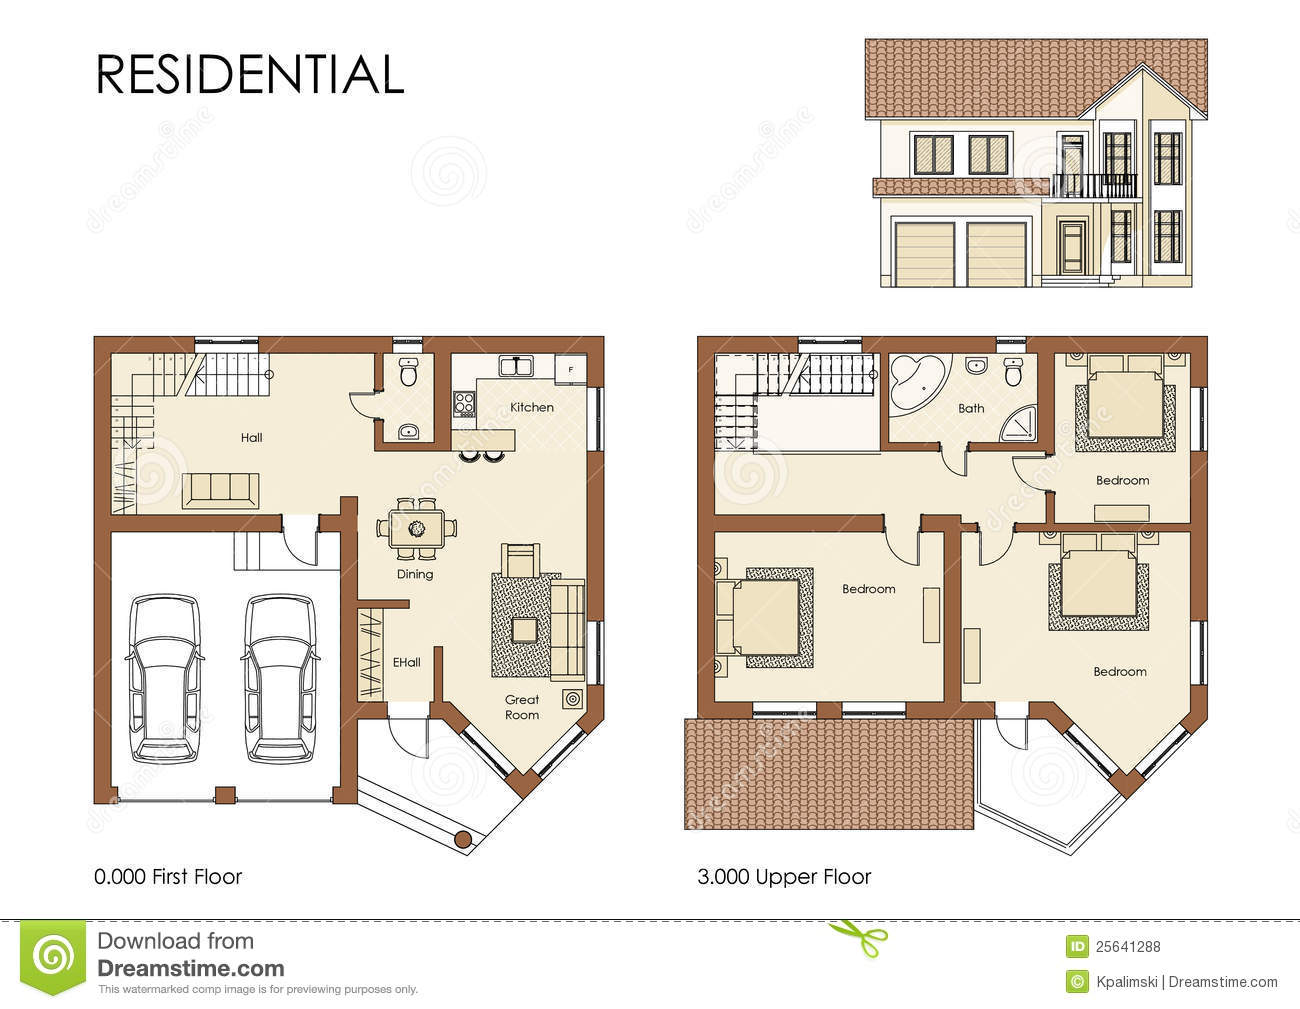 Residential House Plan Stock Illustration. Illustration Of